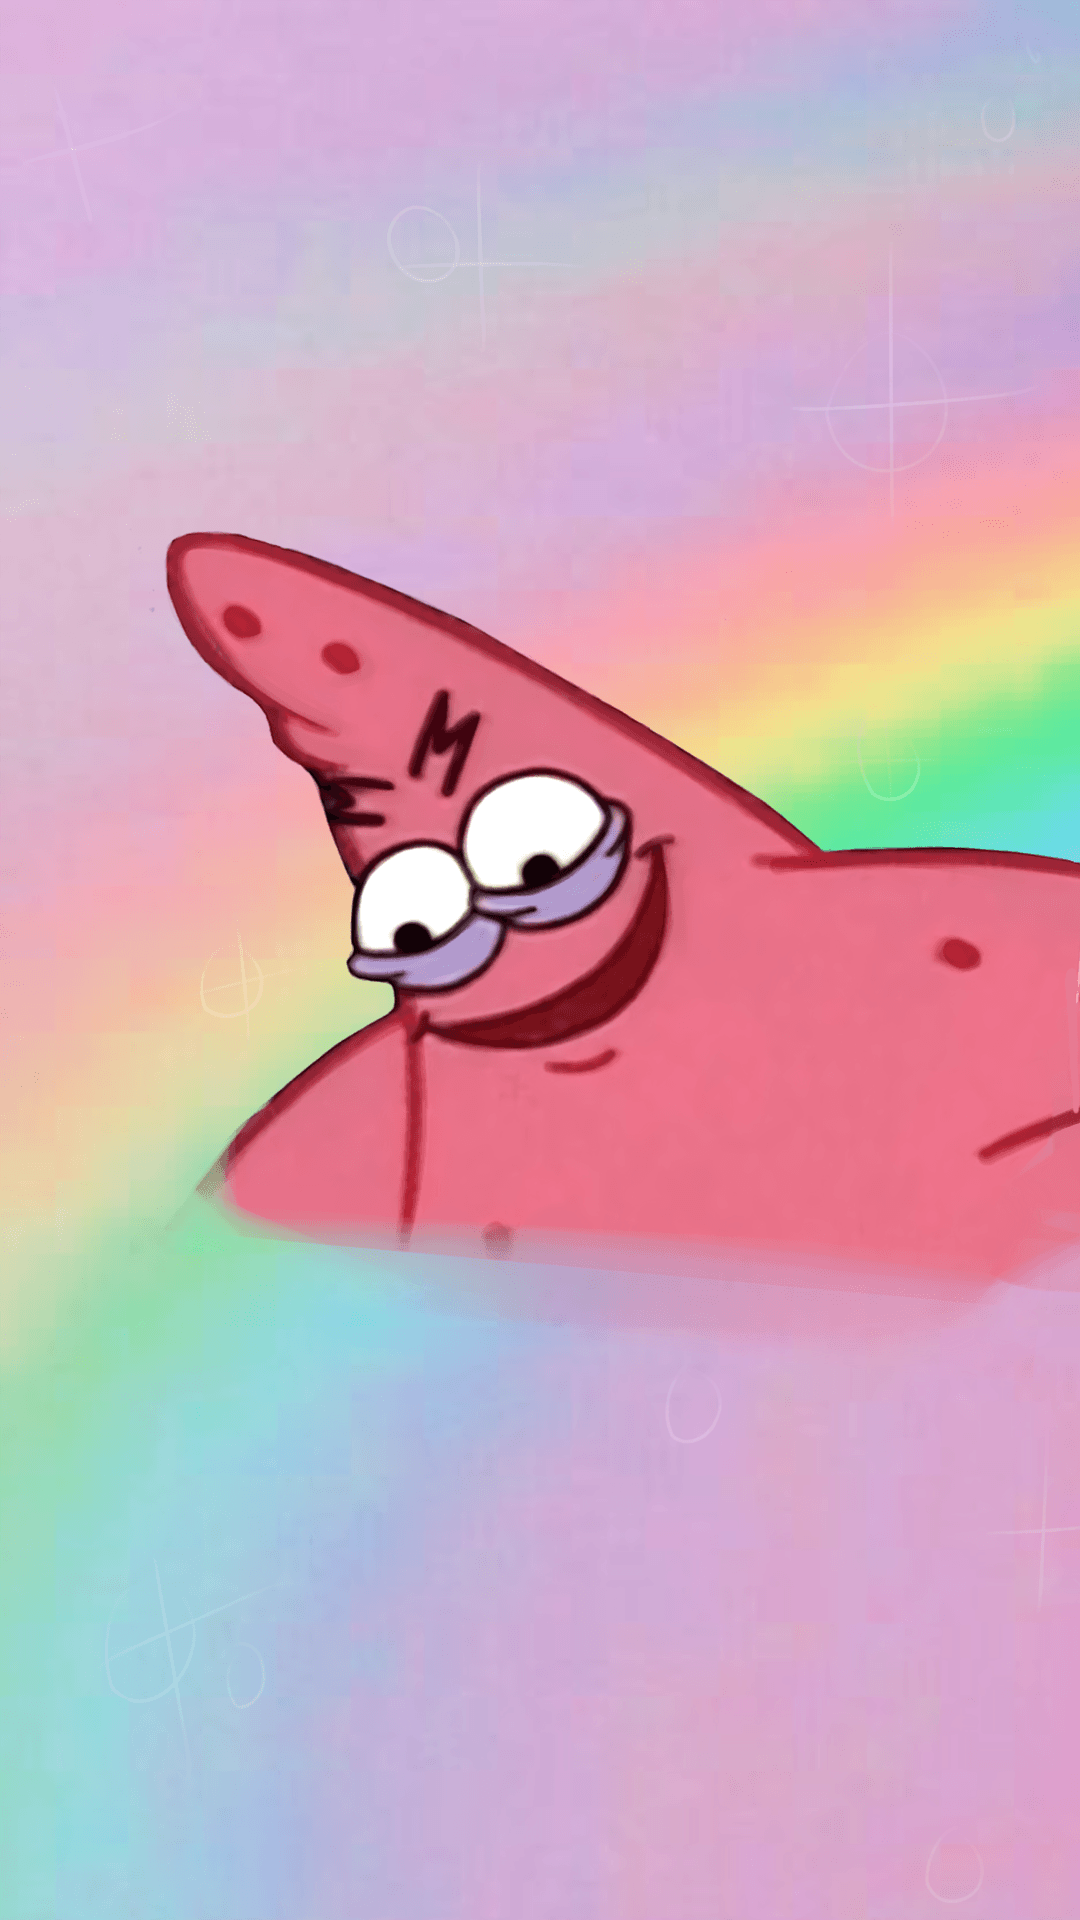 1080x1920 Patrick Star Aesthetic Phone Wallpaper Album